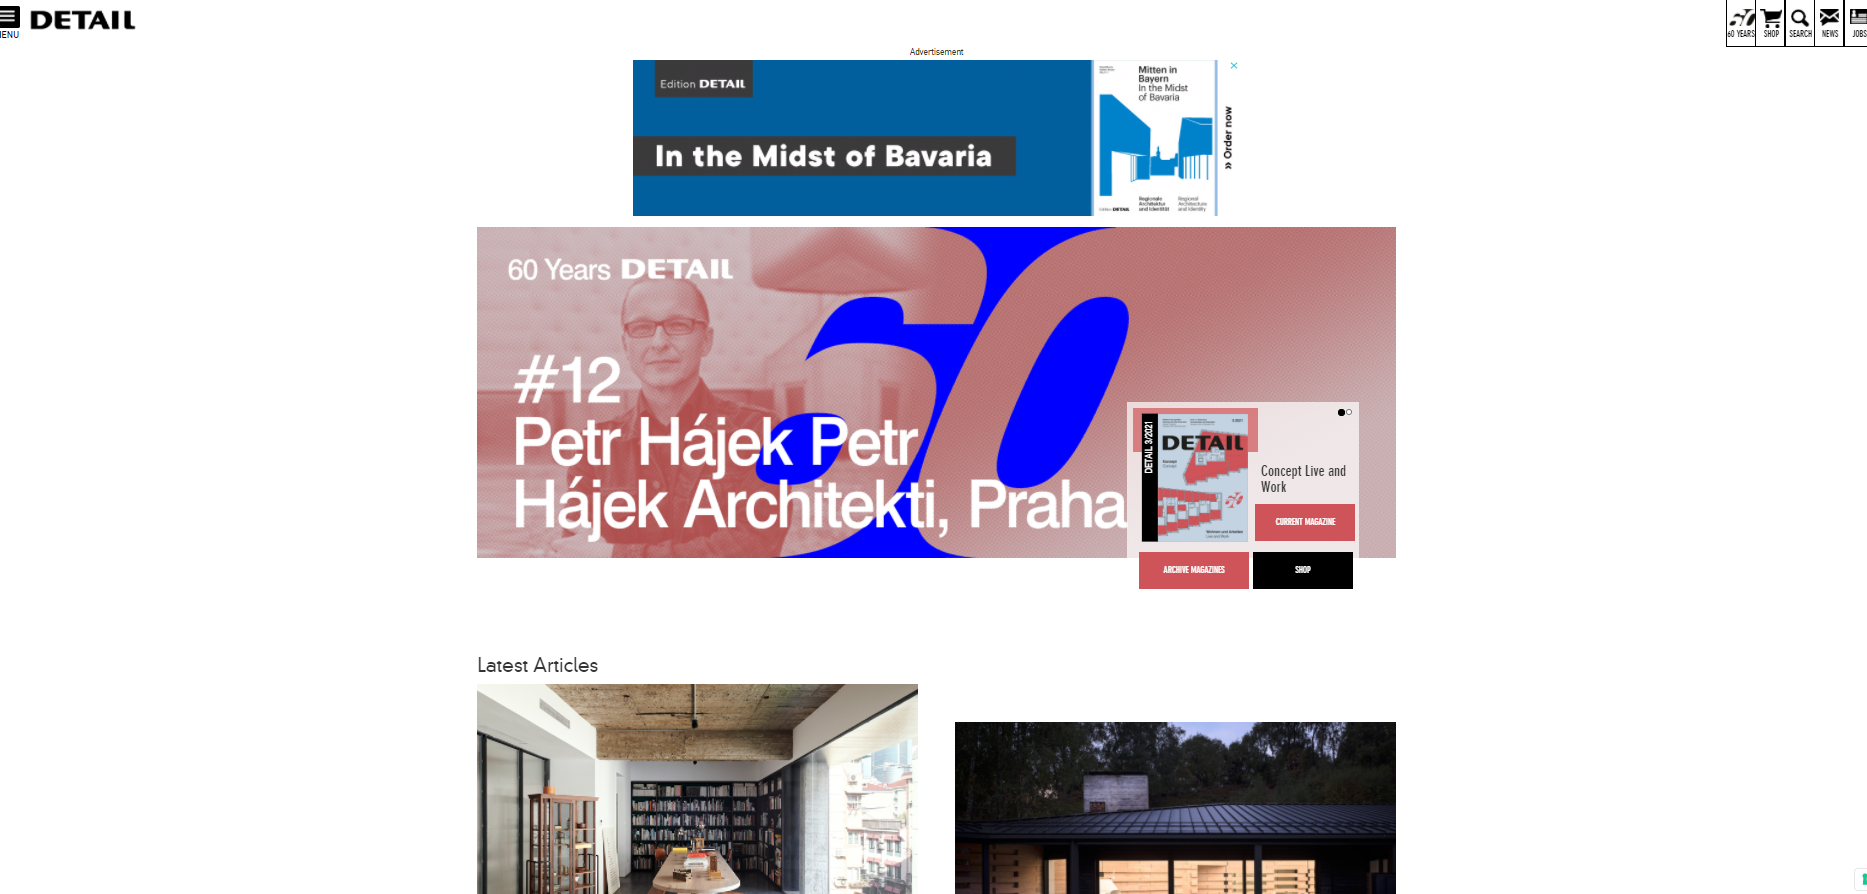 10 Magazines architects/designers must read to keep themselves updated - Sheet13